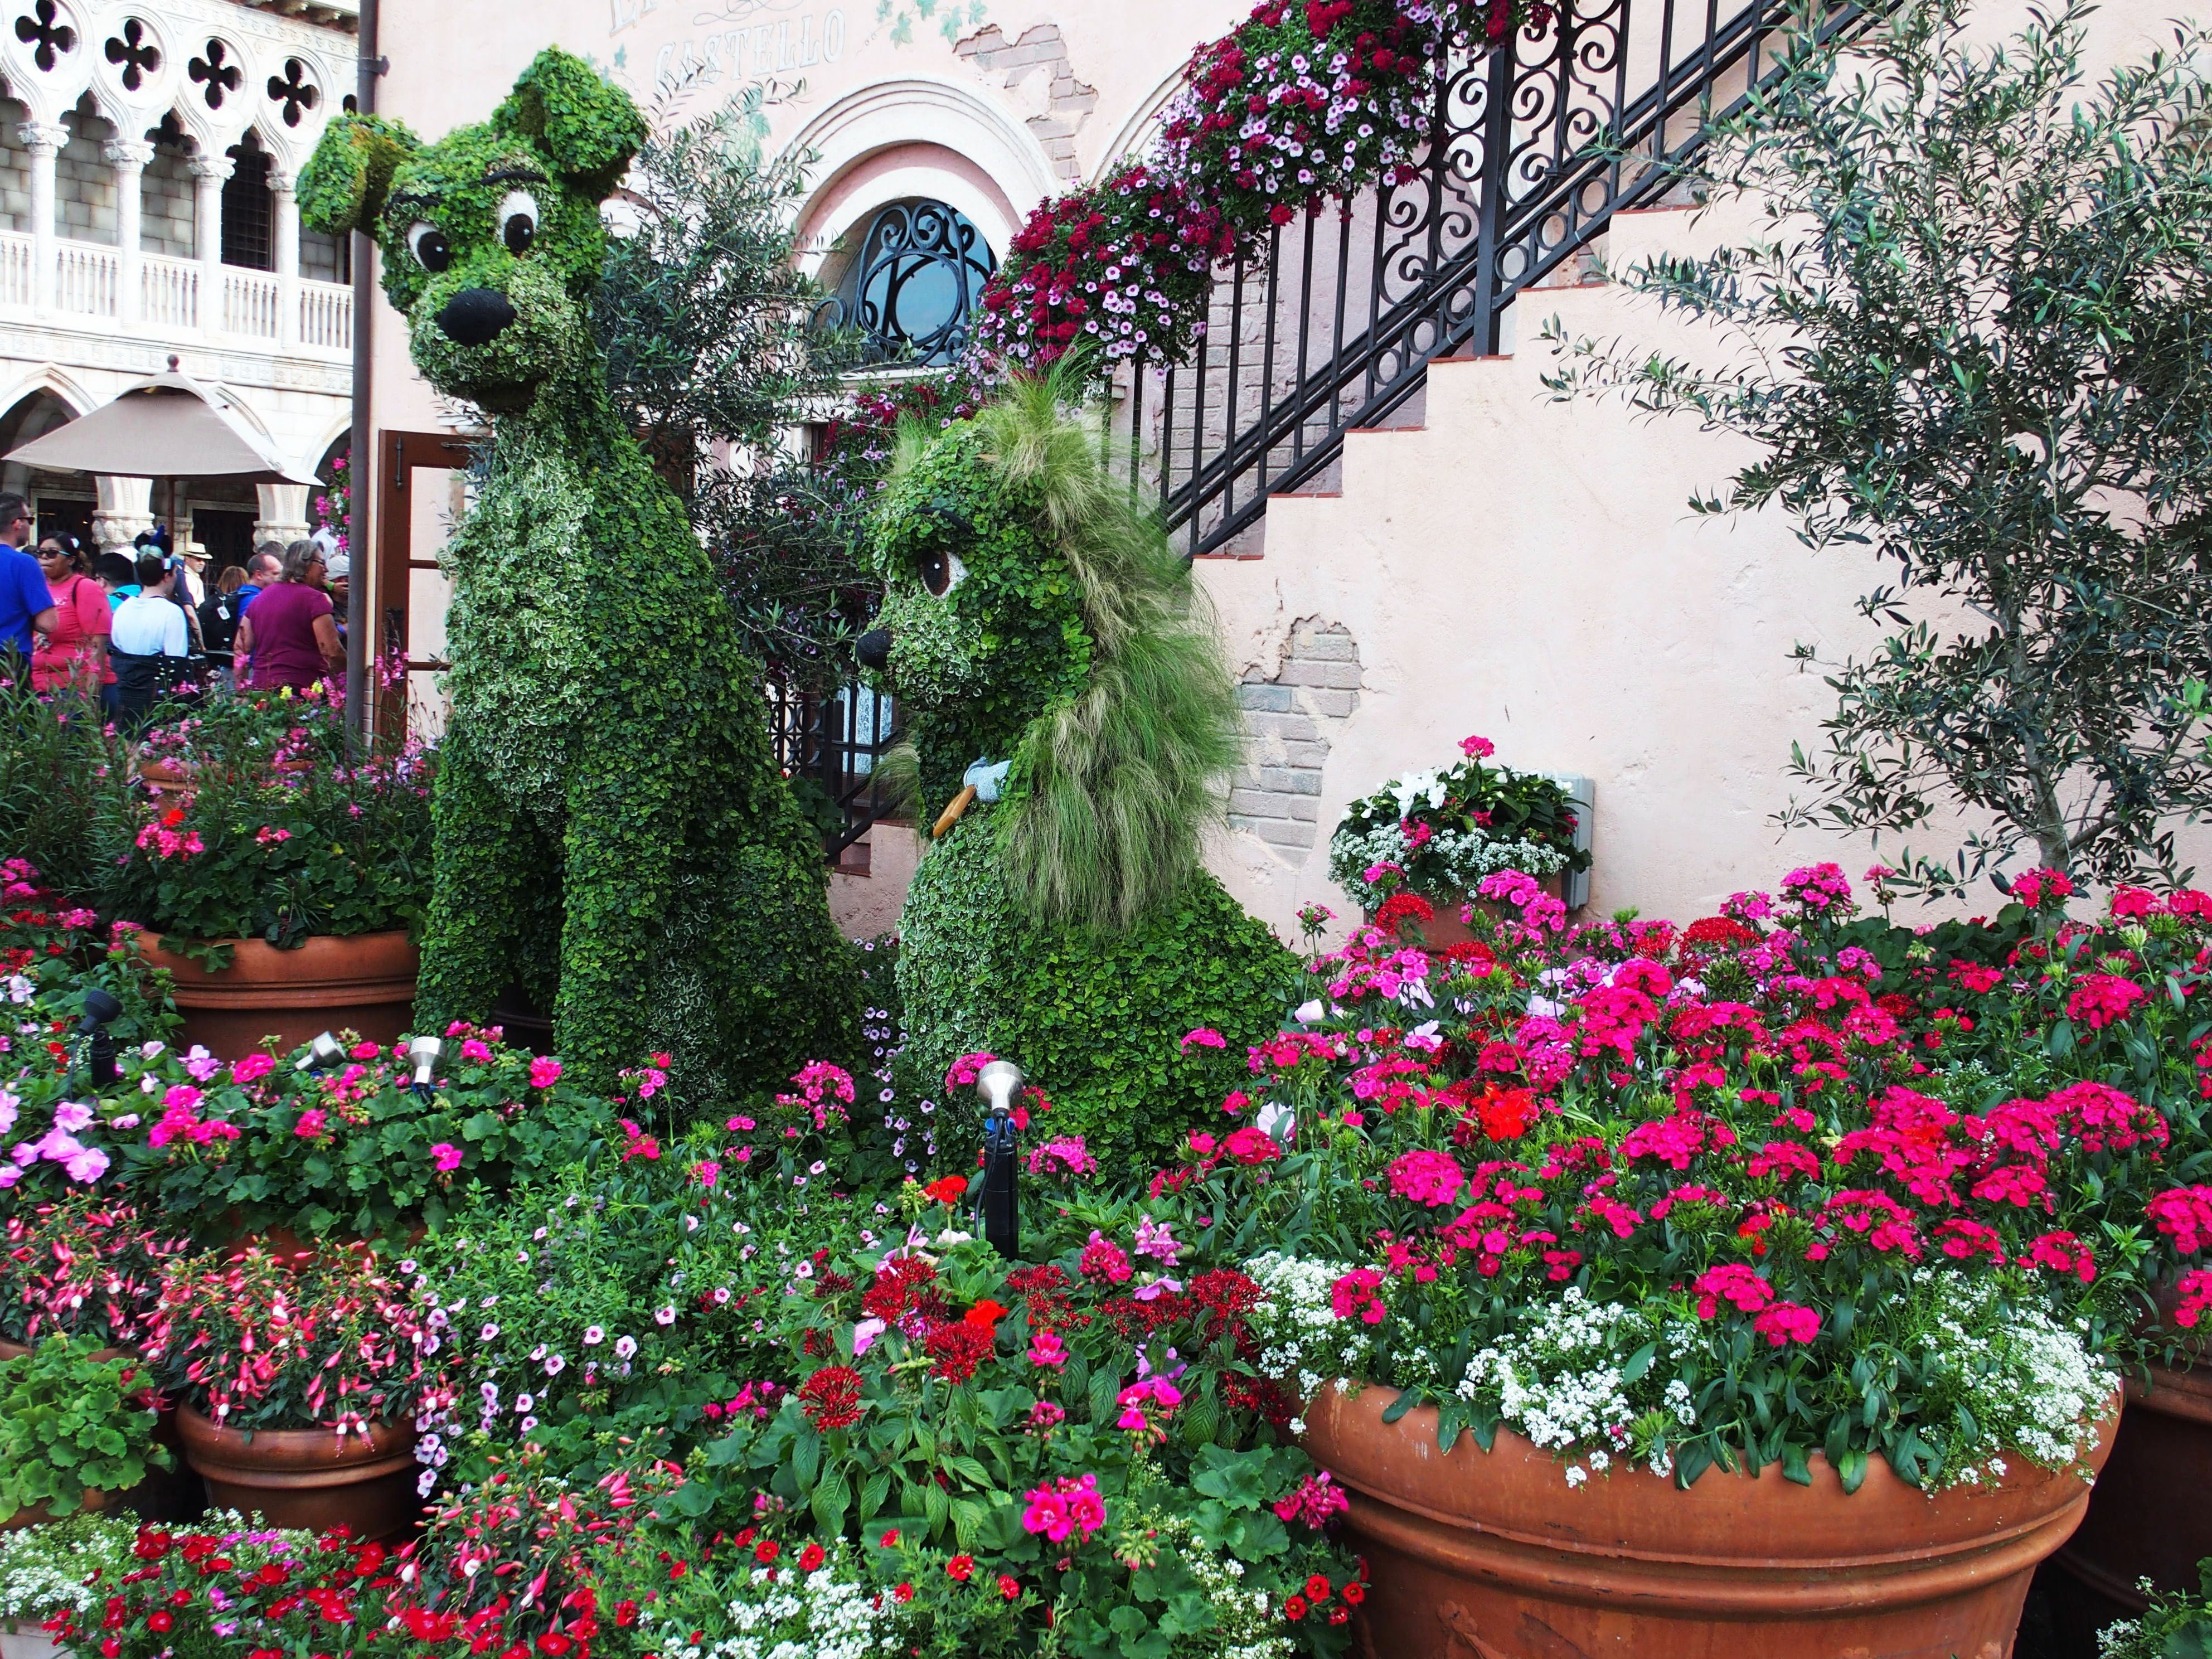 Lady and the Tramp in Italy - EPCOT's Flower and Garden Festival 2017